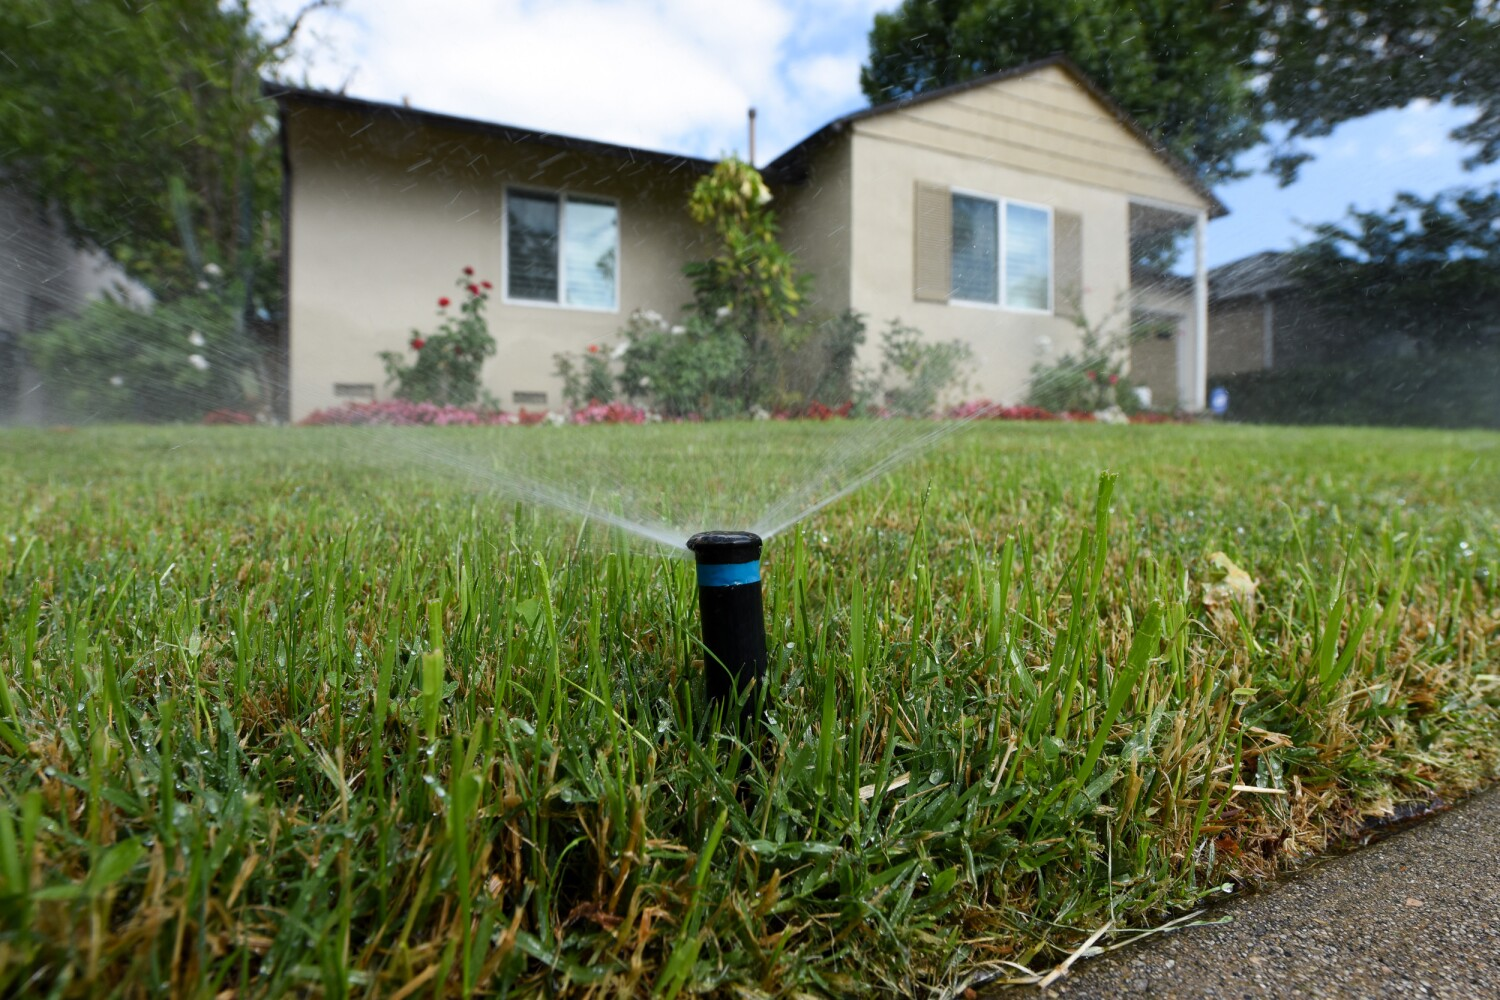 Drought-stricken California cut its water use by 5% in August